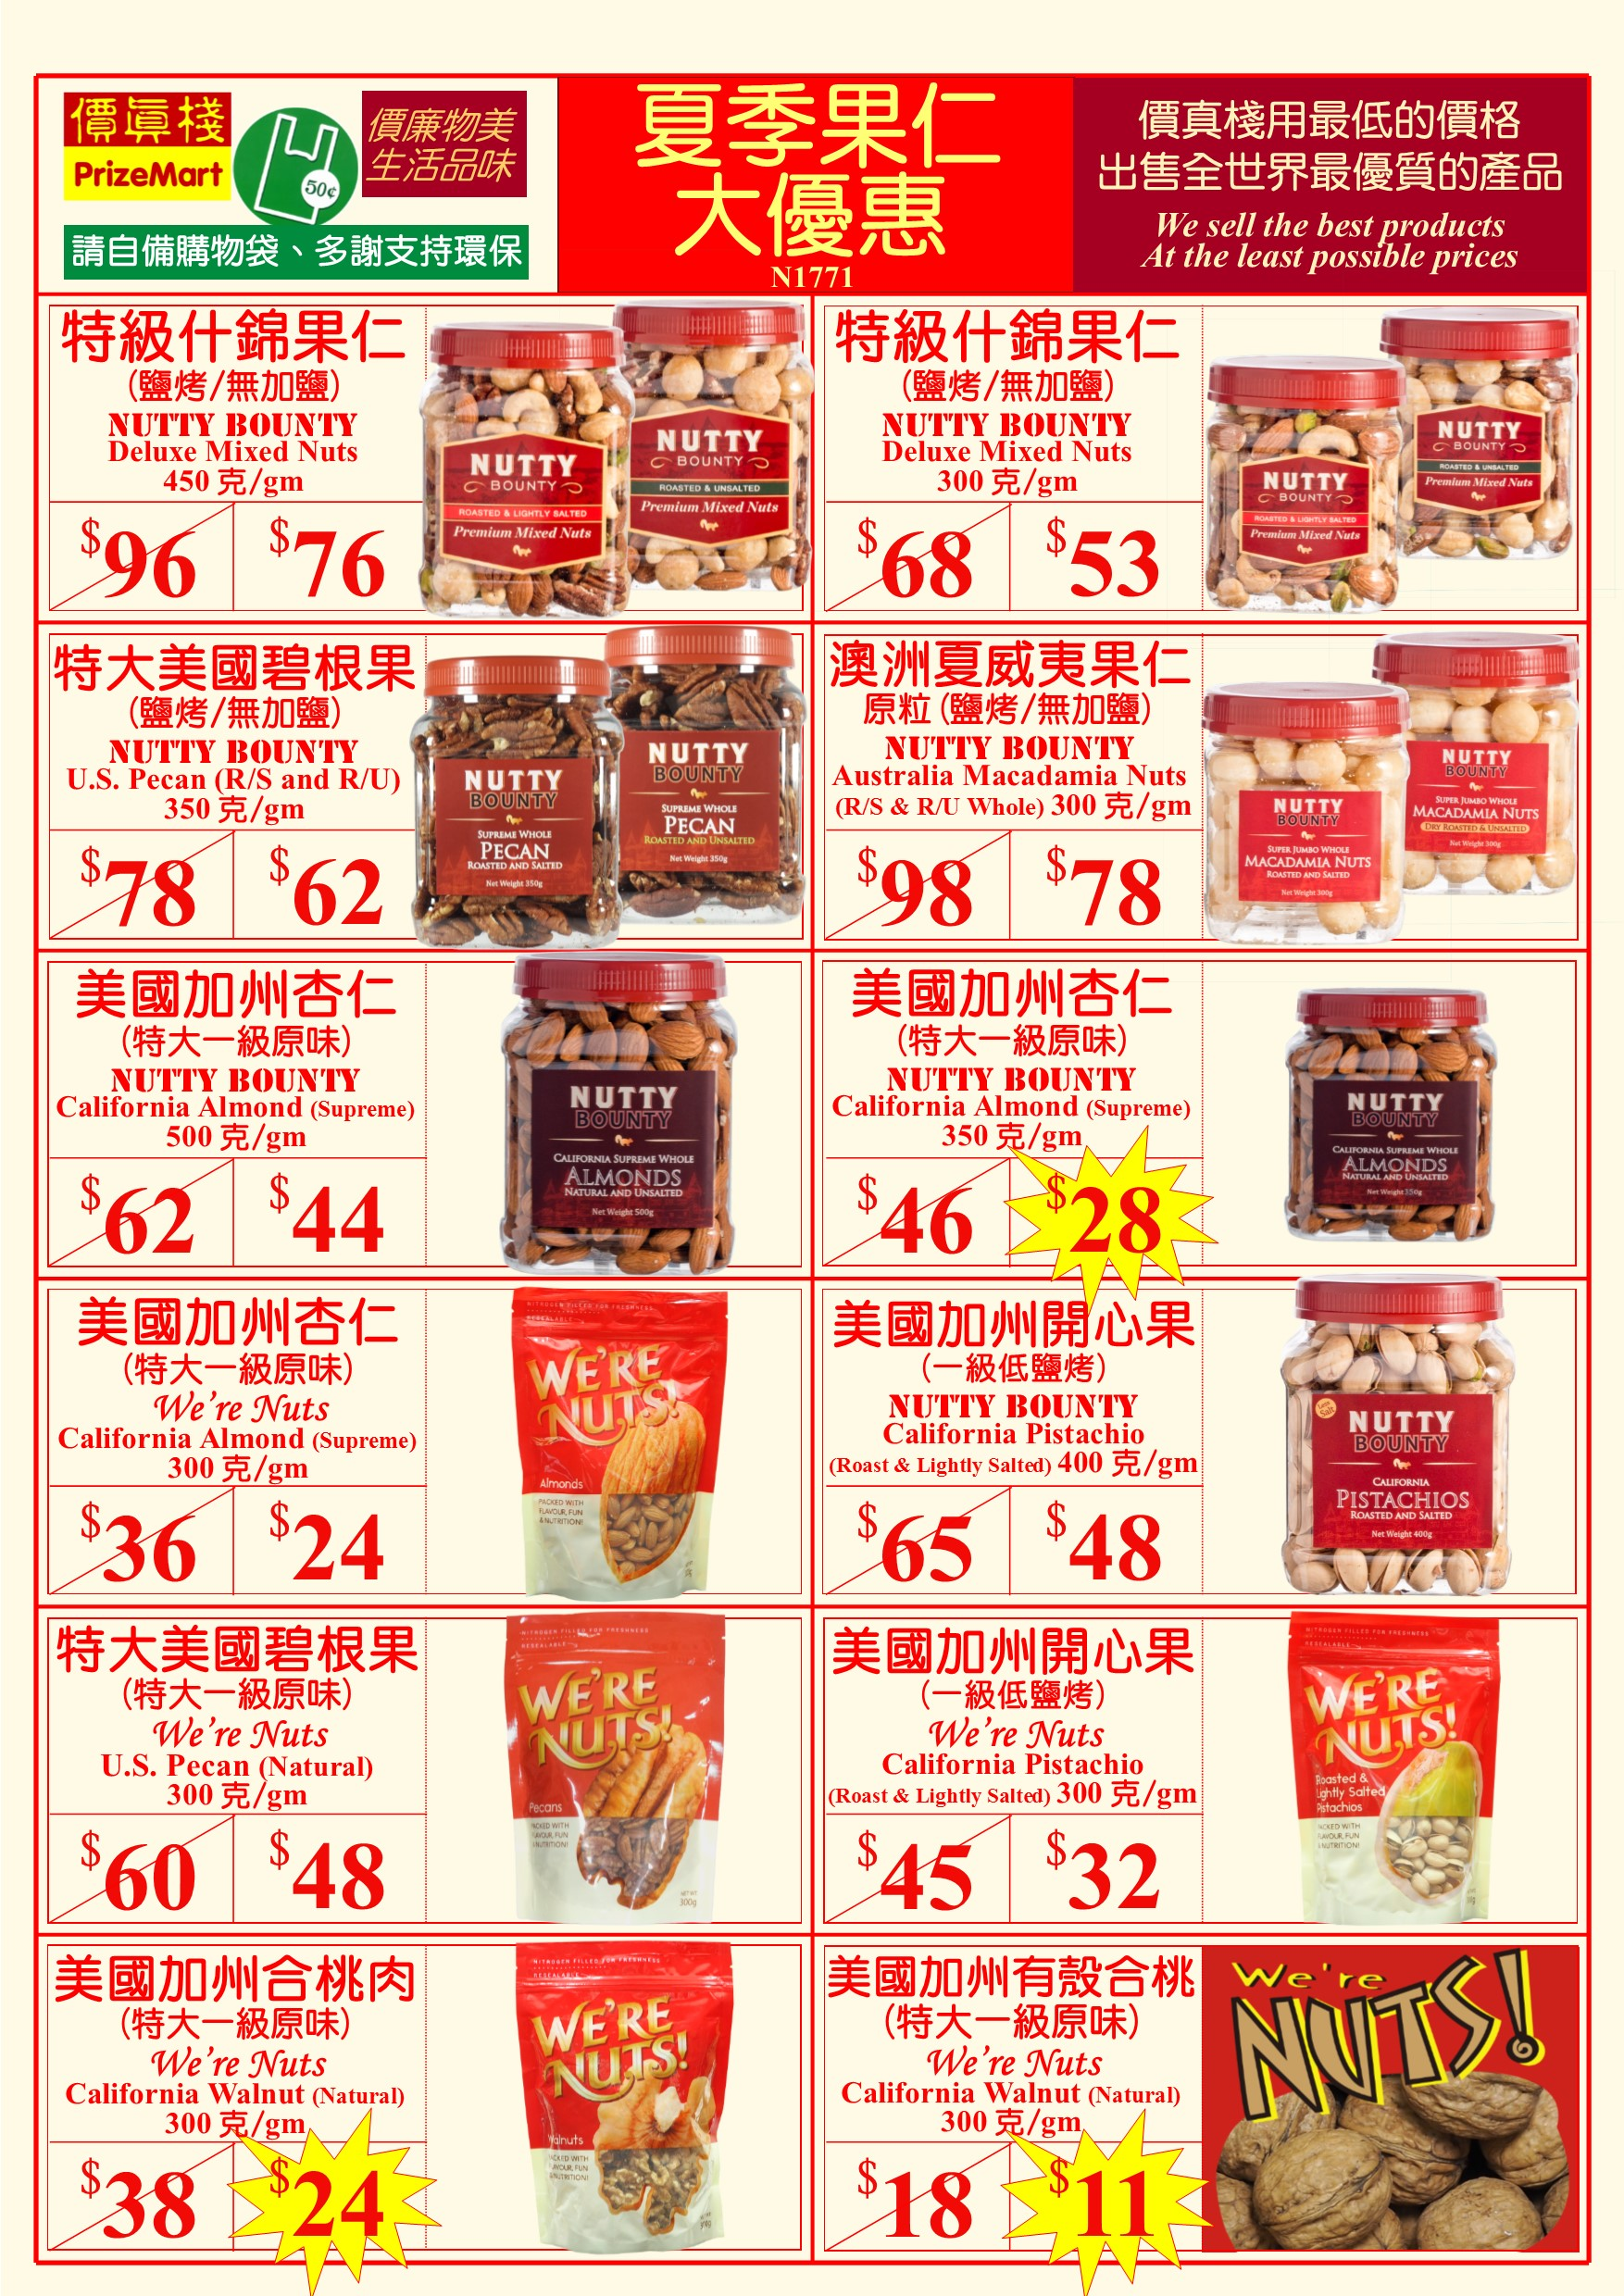 Summer Mixed Nuts Promotion